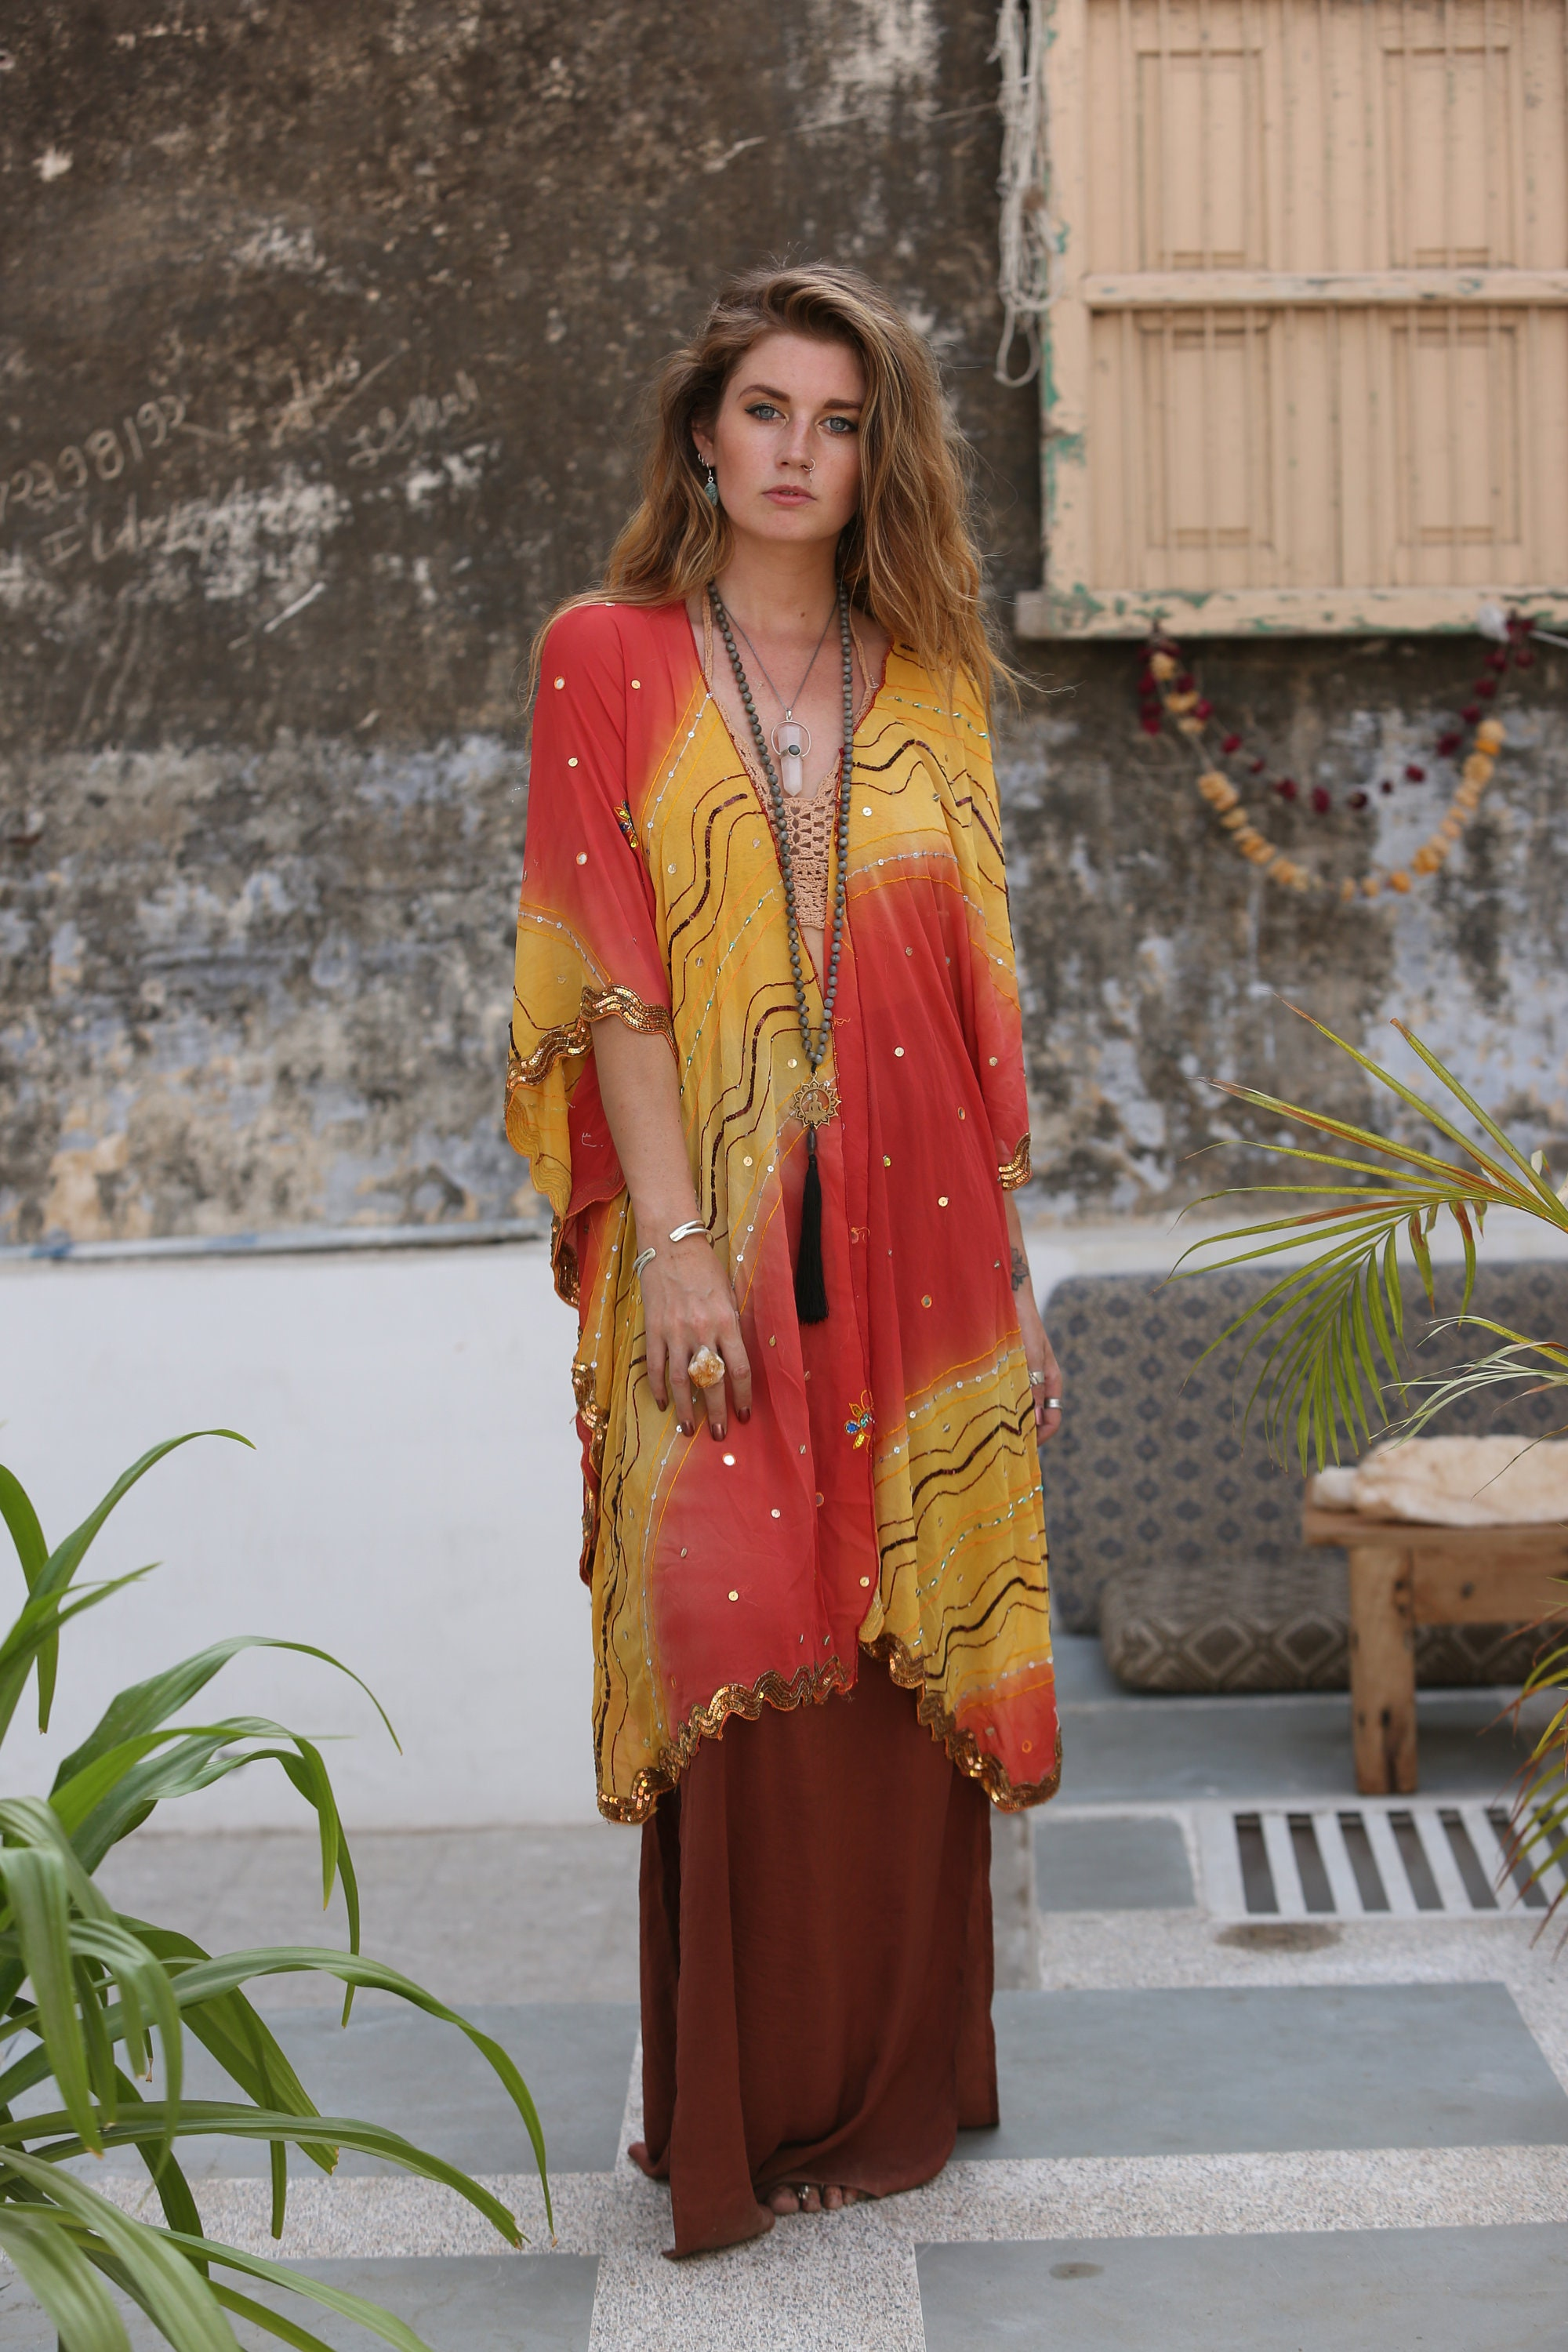 fb01f47450 INDIAN SEQUIN KIMONO - Embellished - Vintage - kaftan - Festival ...